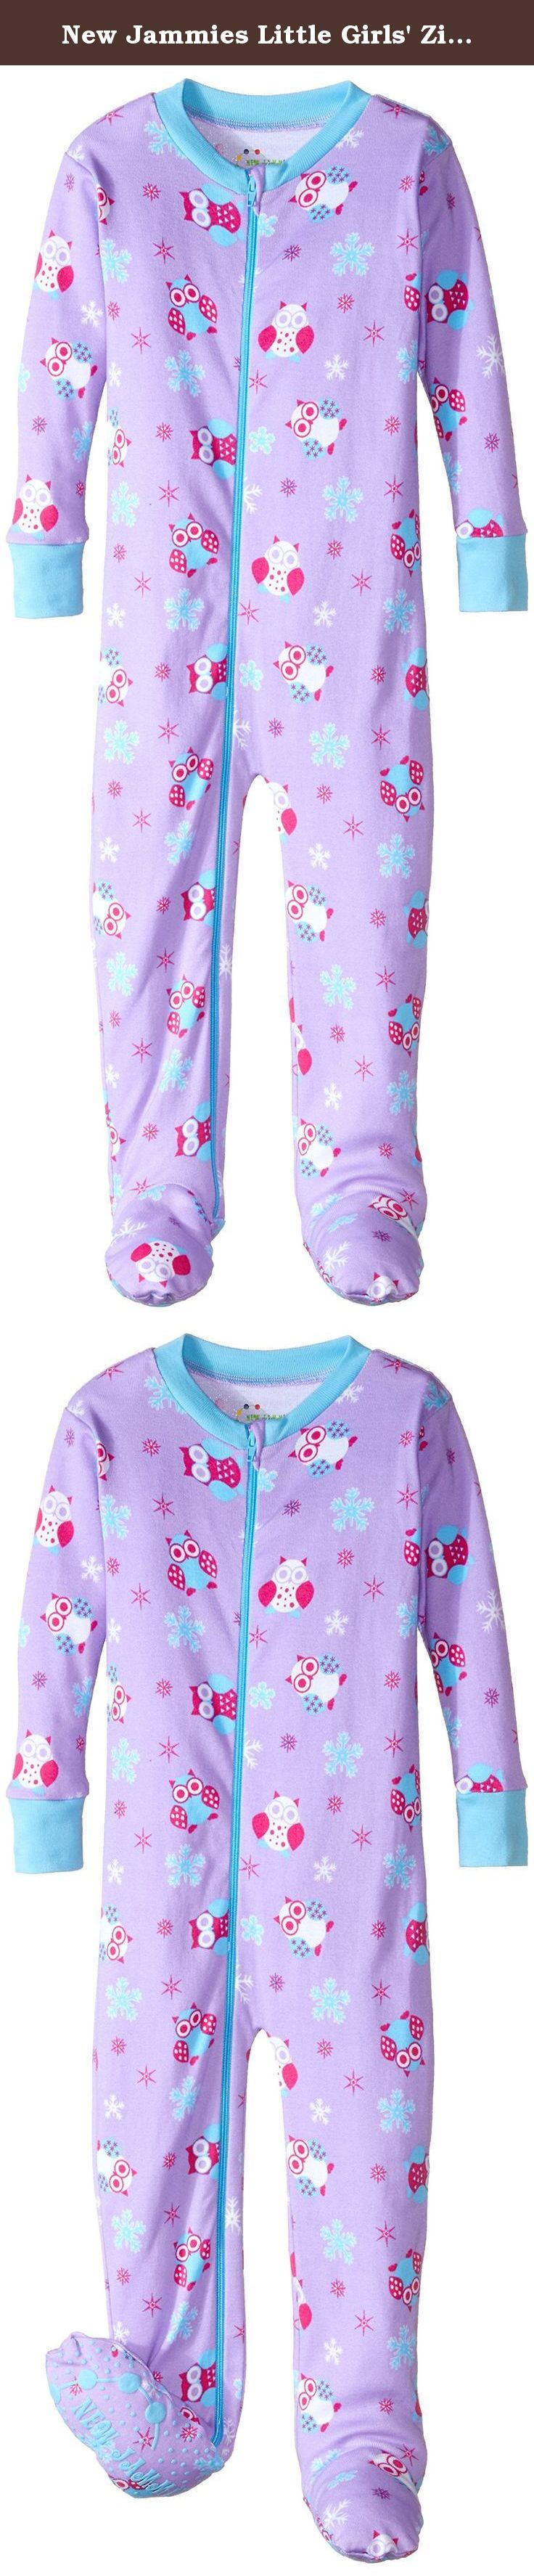 new jammies little girls' zippered footie pajamas snow owl girls  - new jammies little girls' zippered footie pajamas snow owl girls t our